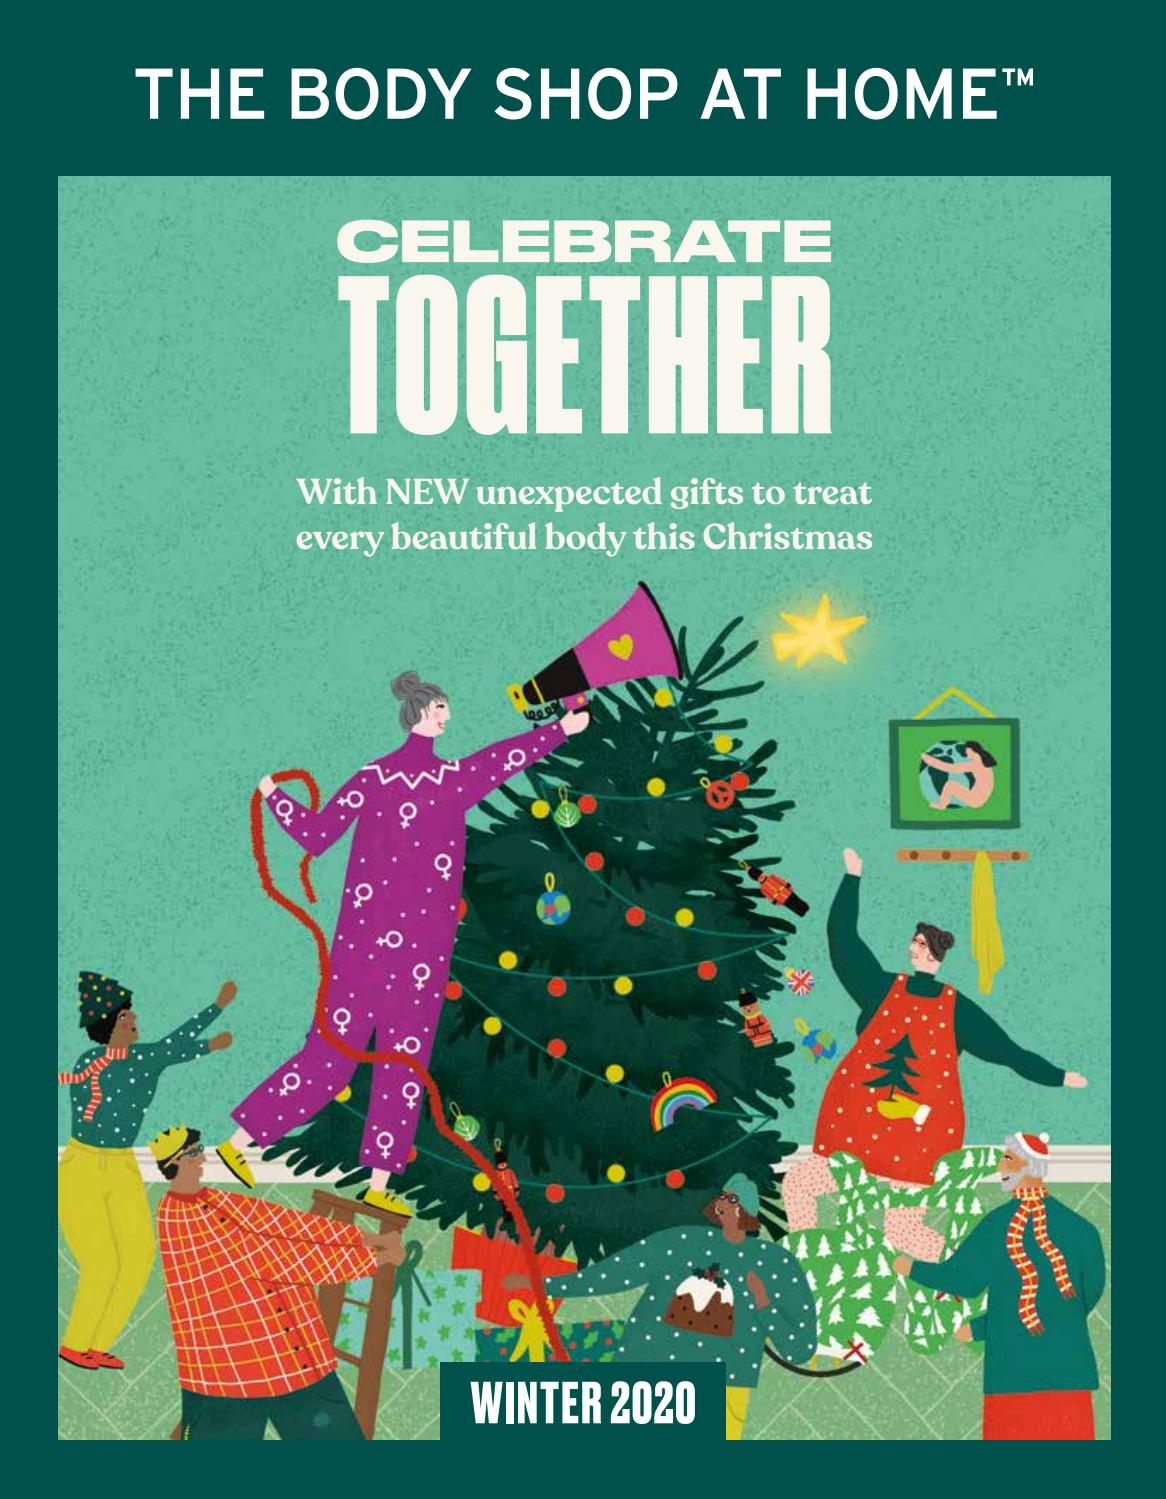 Christmas 2020 Catalogue The Body Shop At Home™ UK Winter 2020 Catalogue by The Body Shop